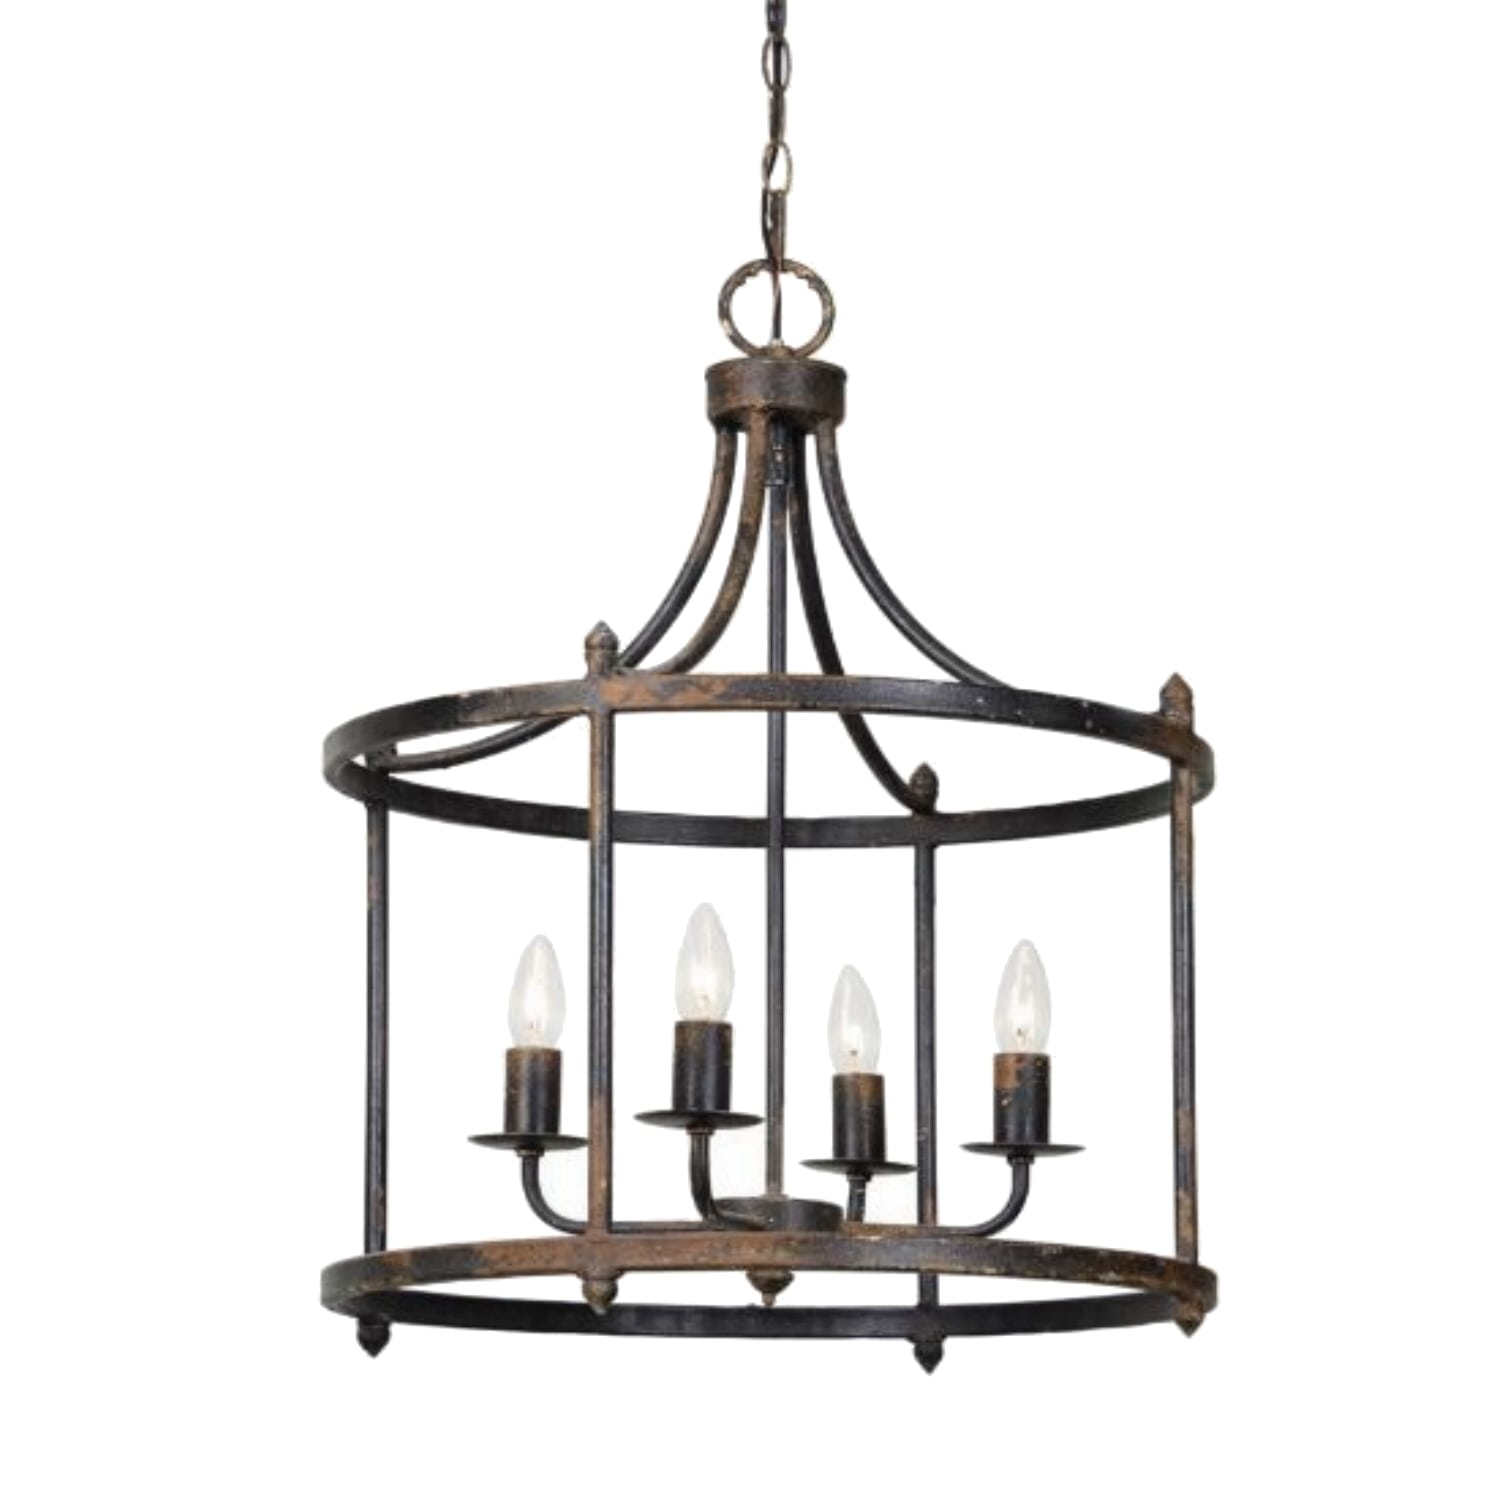 The Virginia Round Chandelier Kitchen Or Hall Pendant Light The Kings Bay The Kings Bay